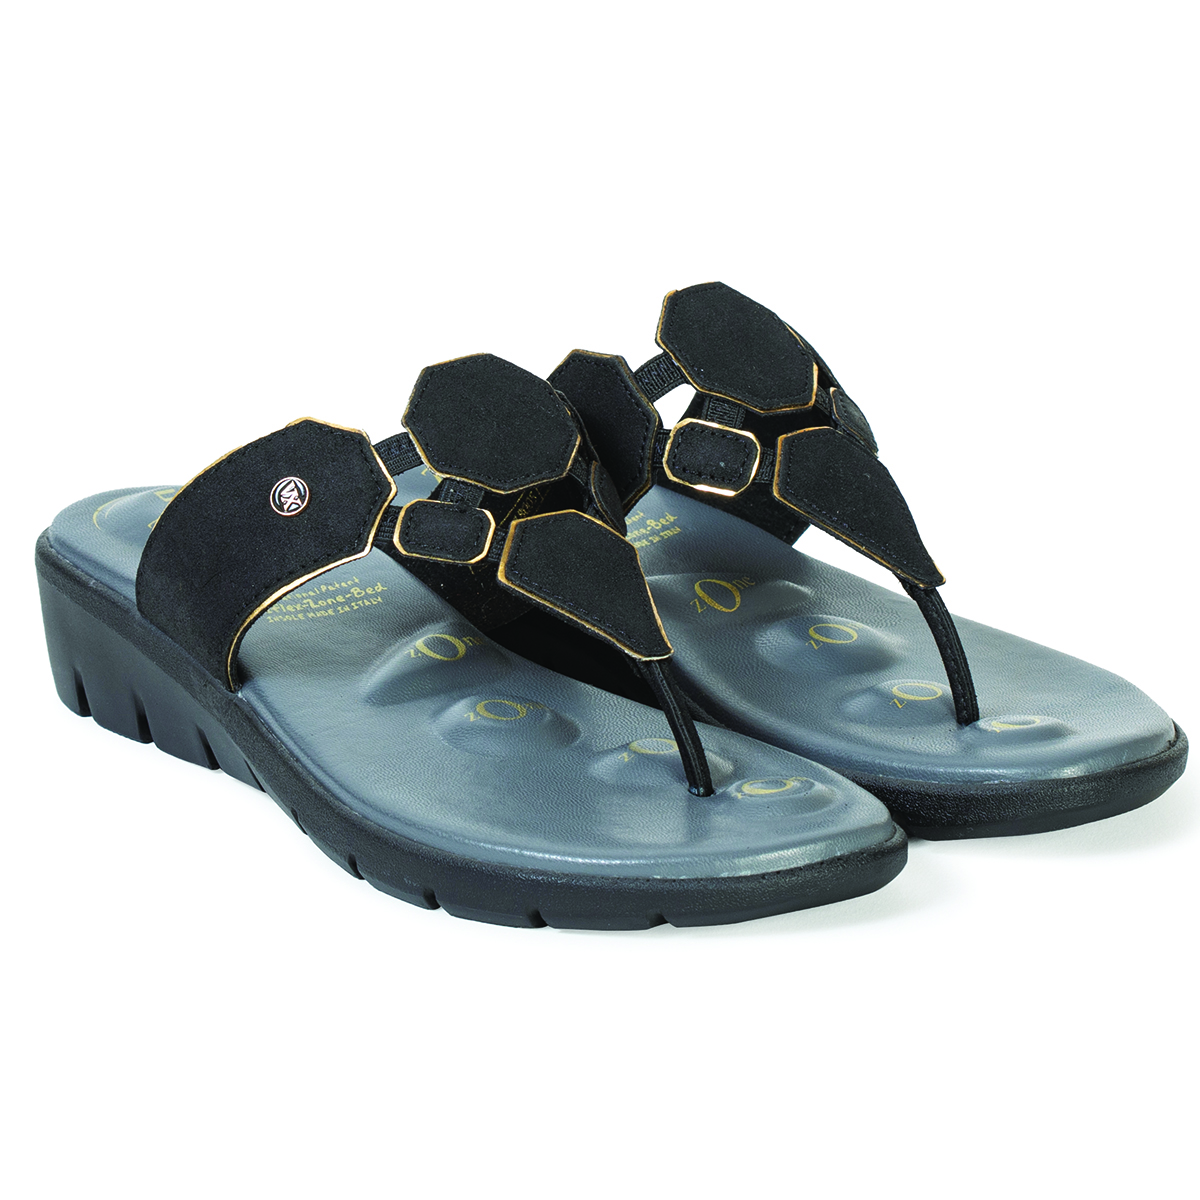 Buy Von Wellx Germany Comfort Salive Black Slippers Online in Ahmedabad